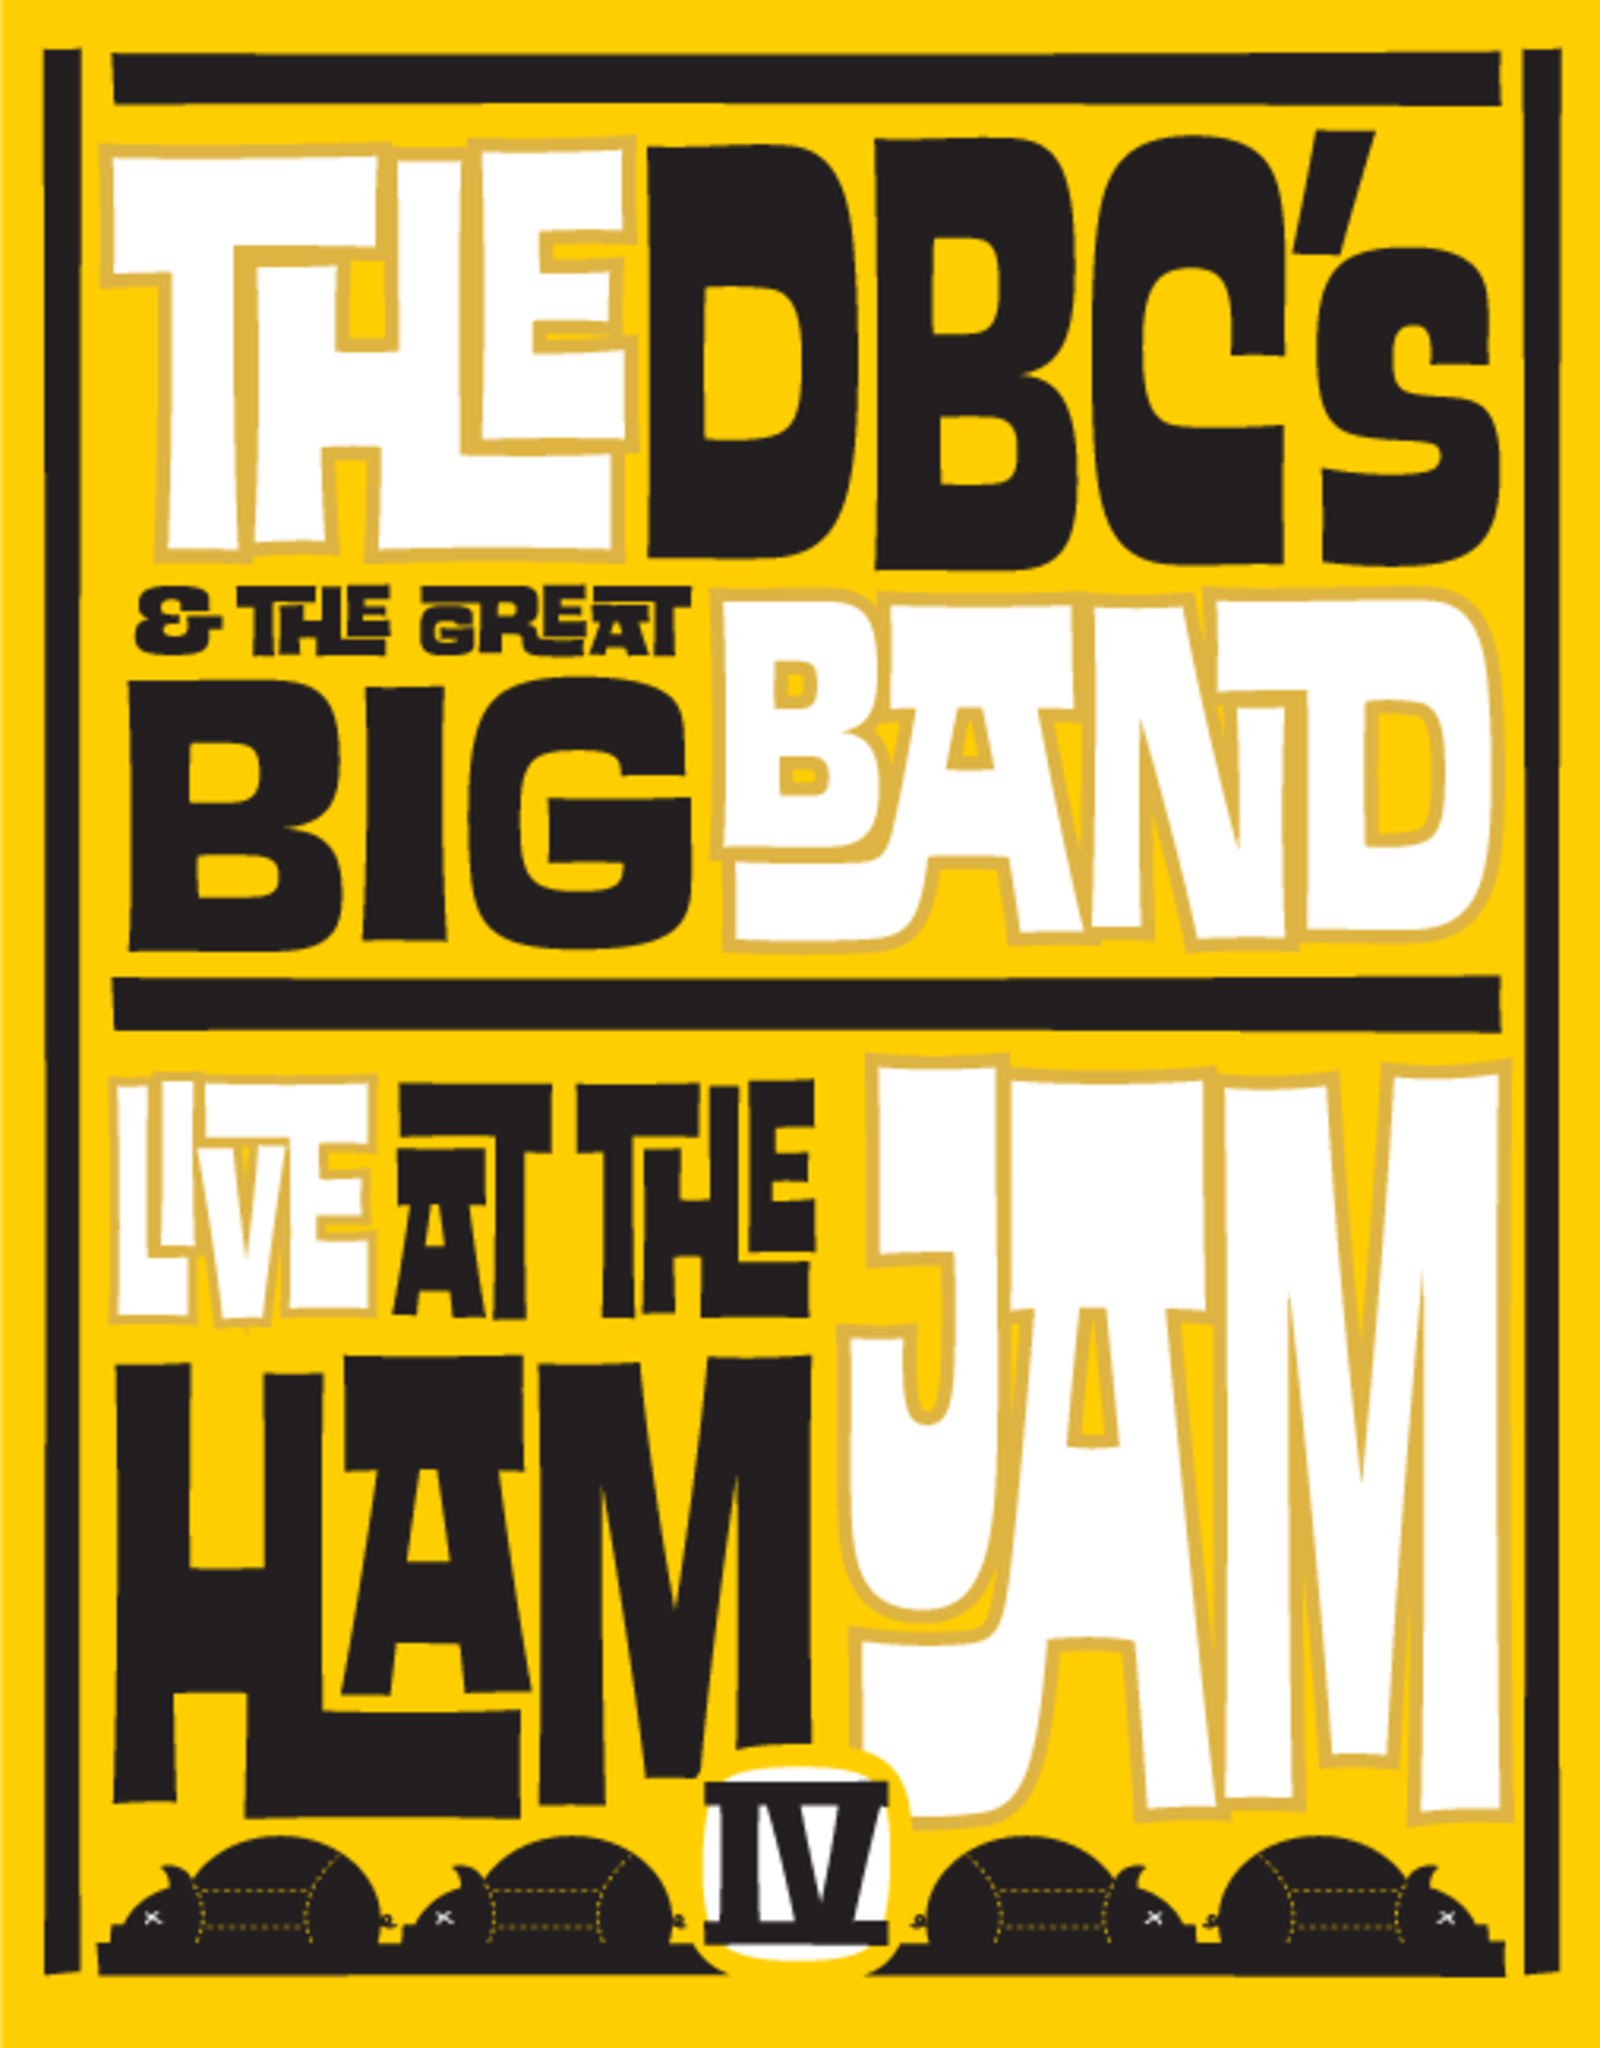 The DBC's & The Great Big Band The DBC's & The Great Big Band Live at The Ham Jam IV